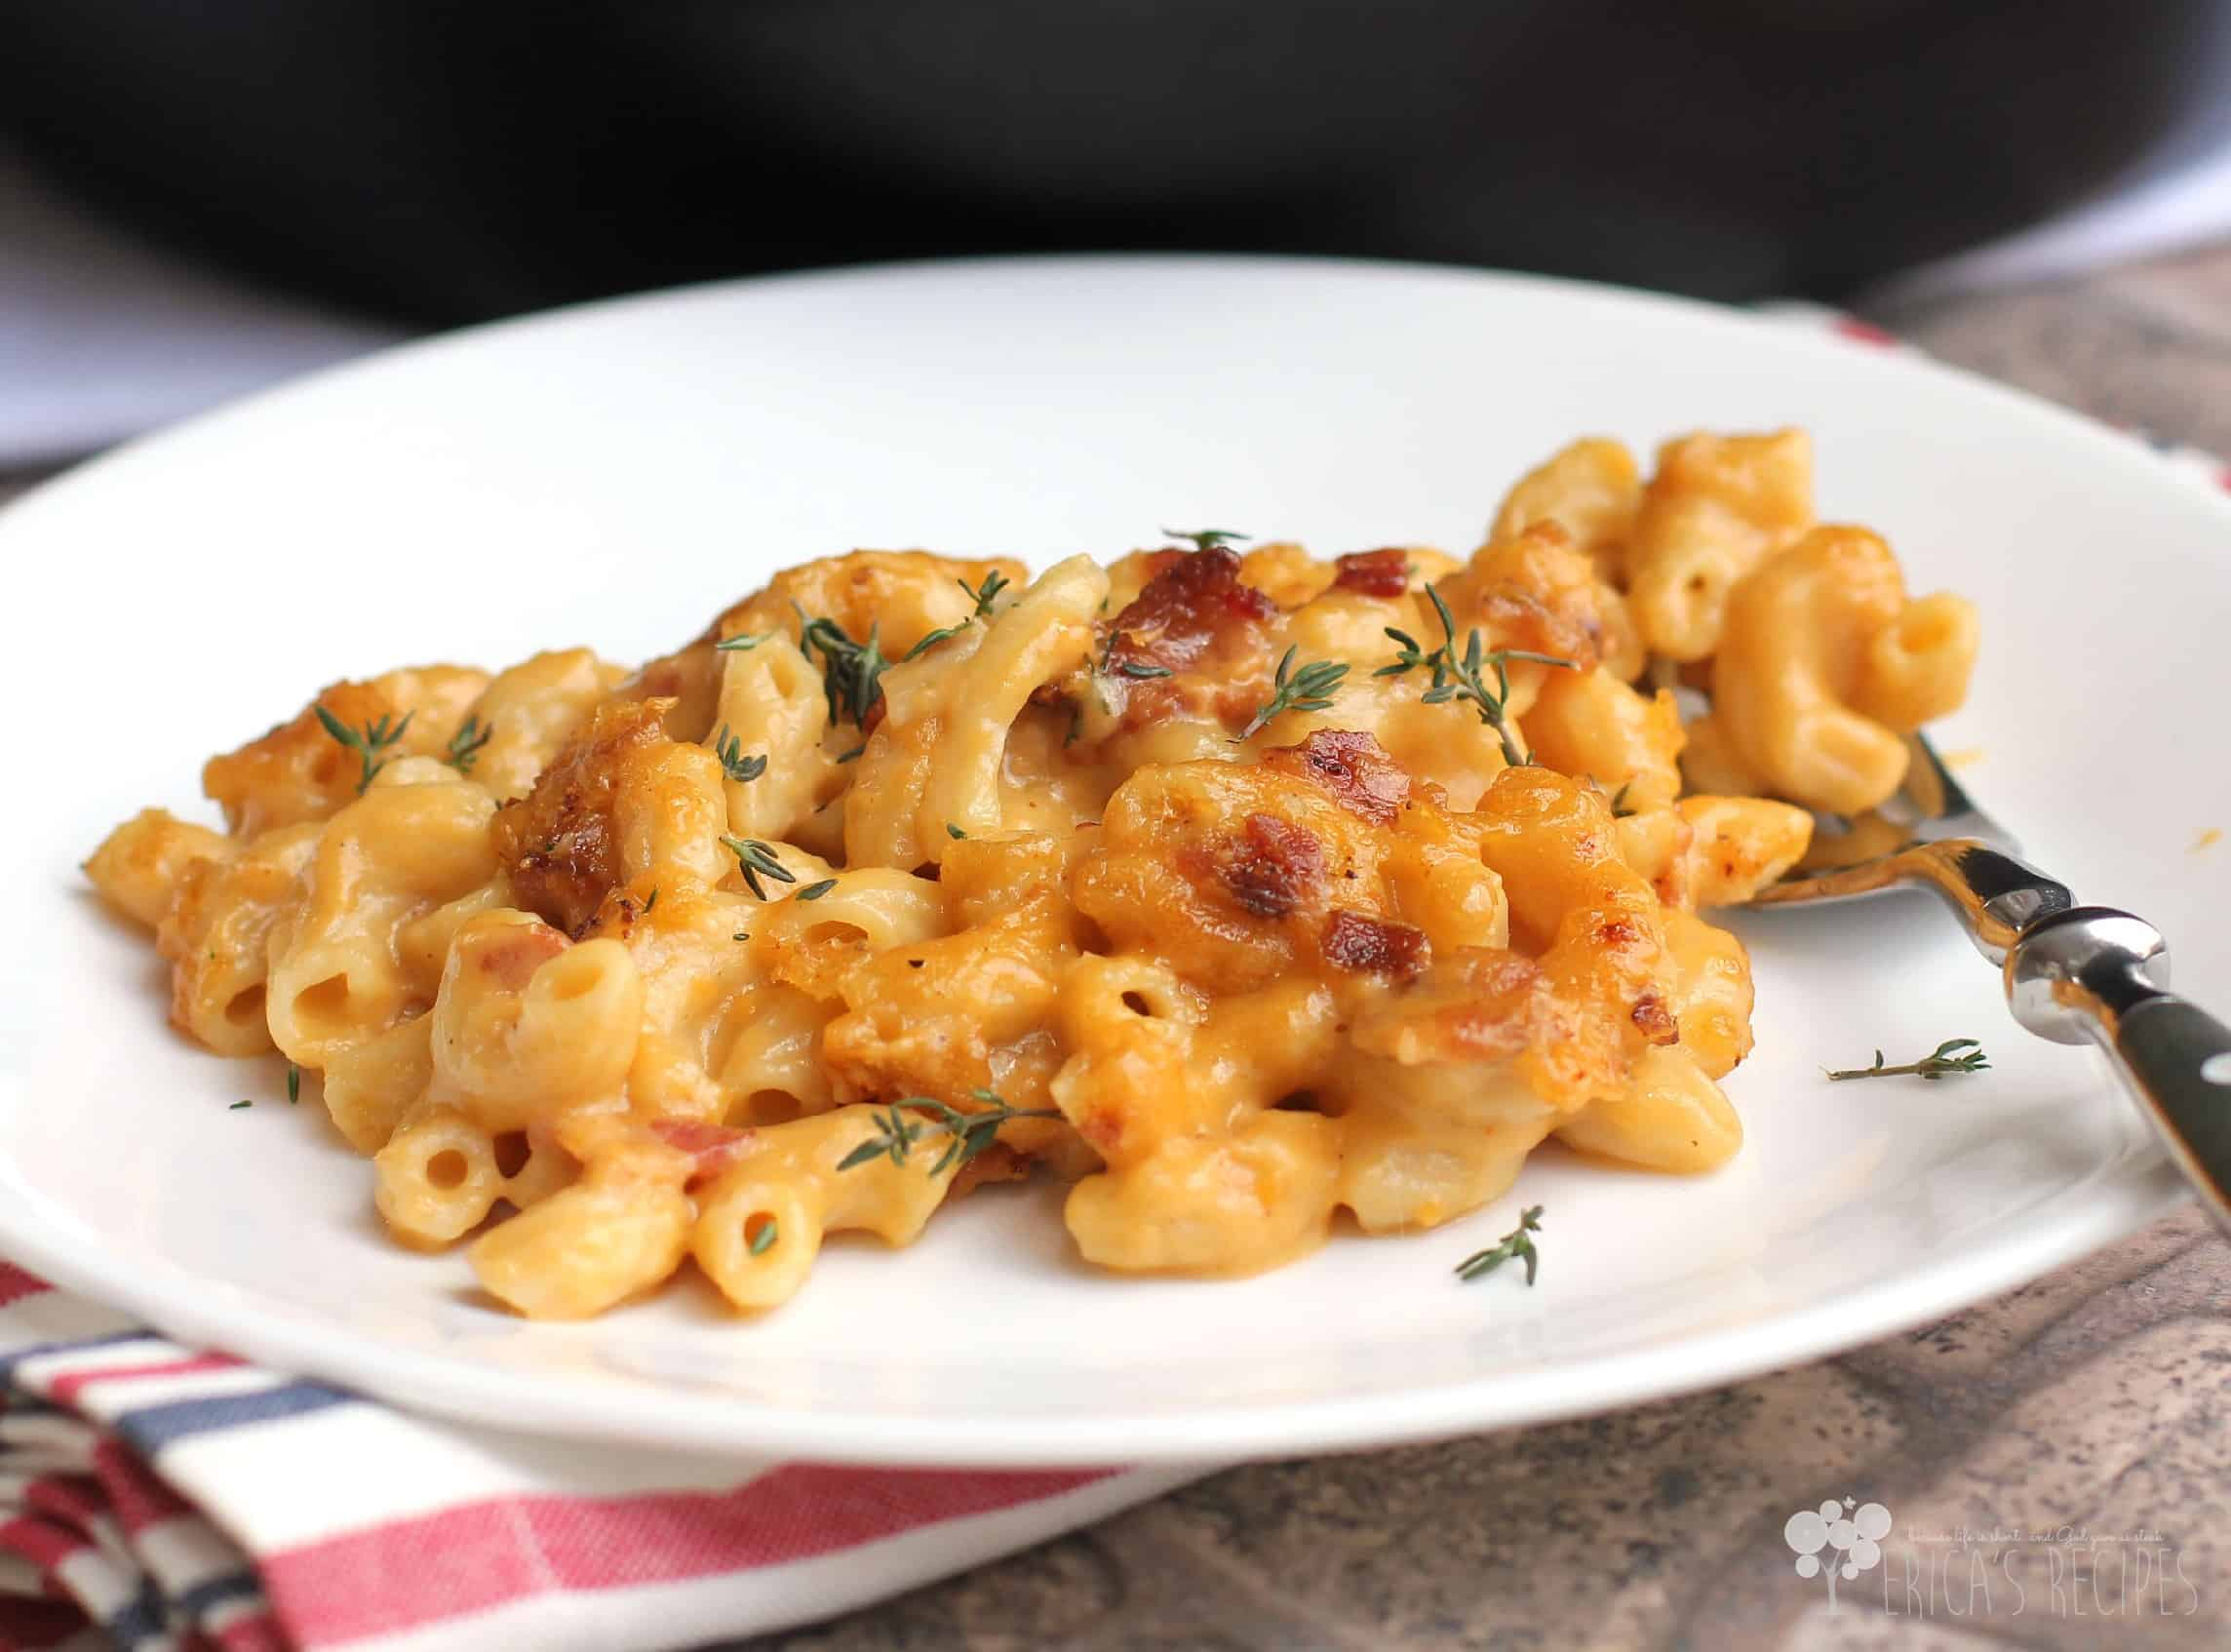 Garlic, Bacon, and Beer Macaroni and Cheese - Erica's Recipes